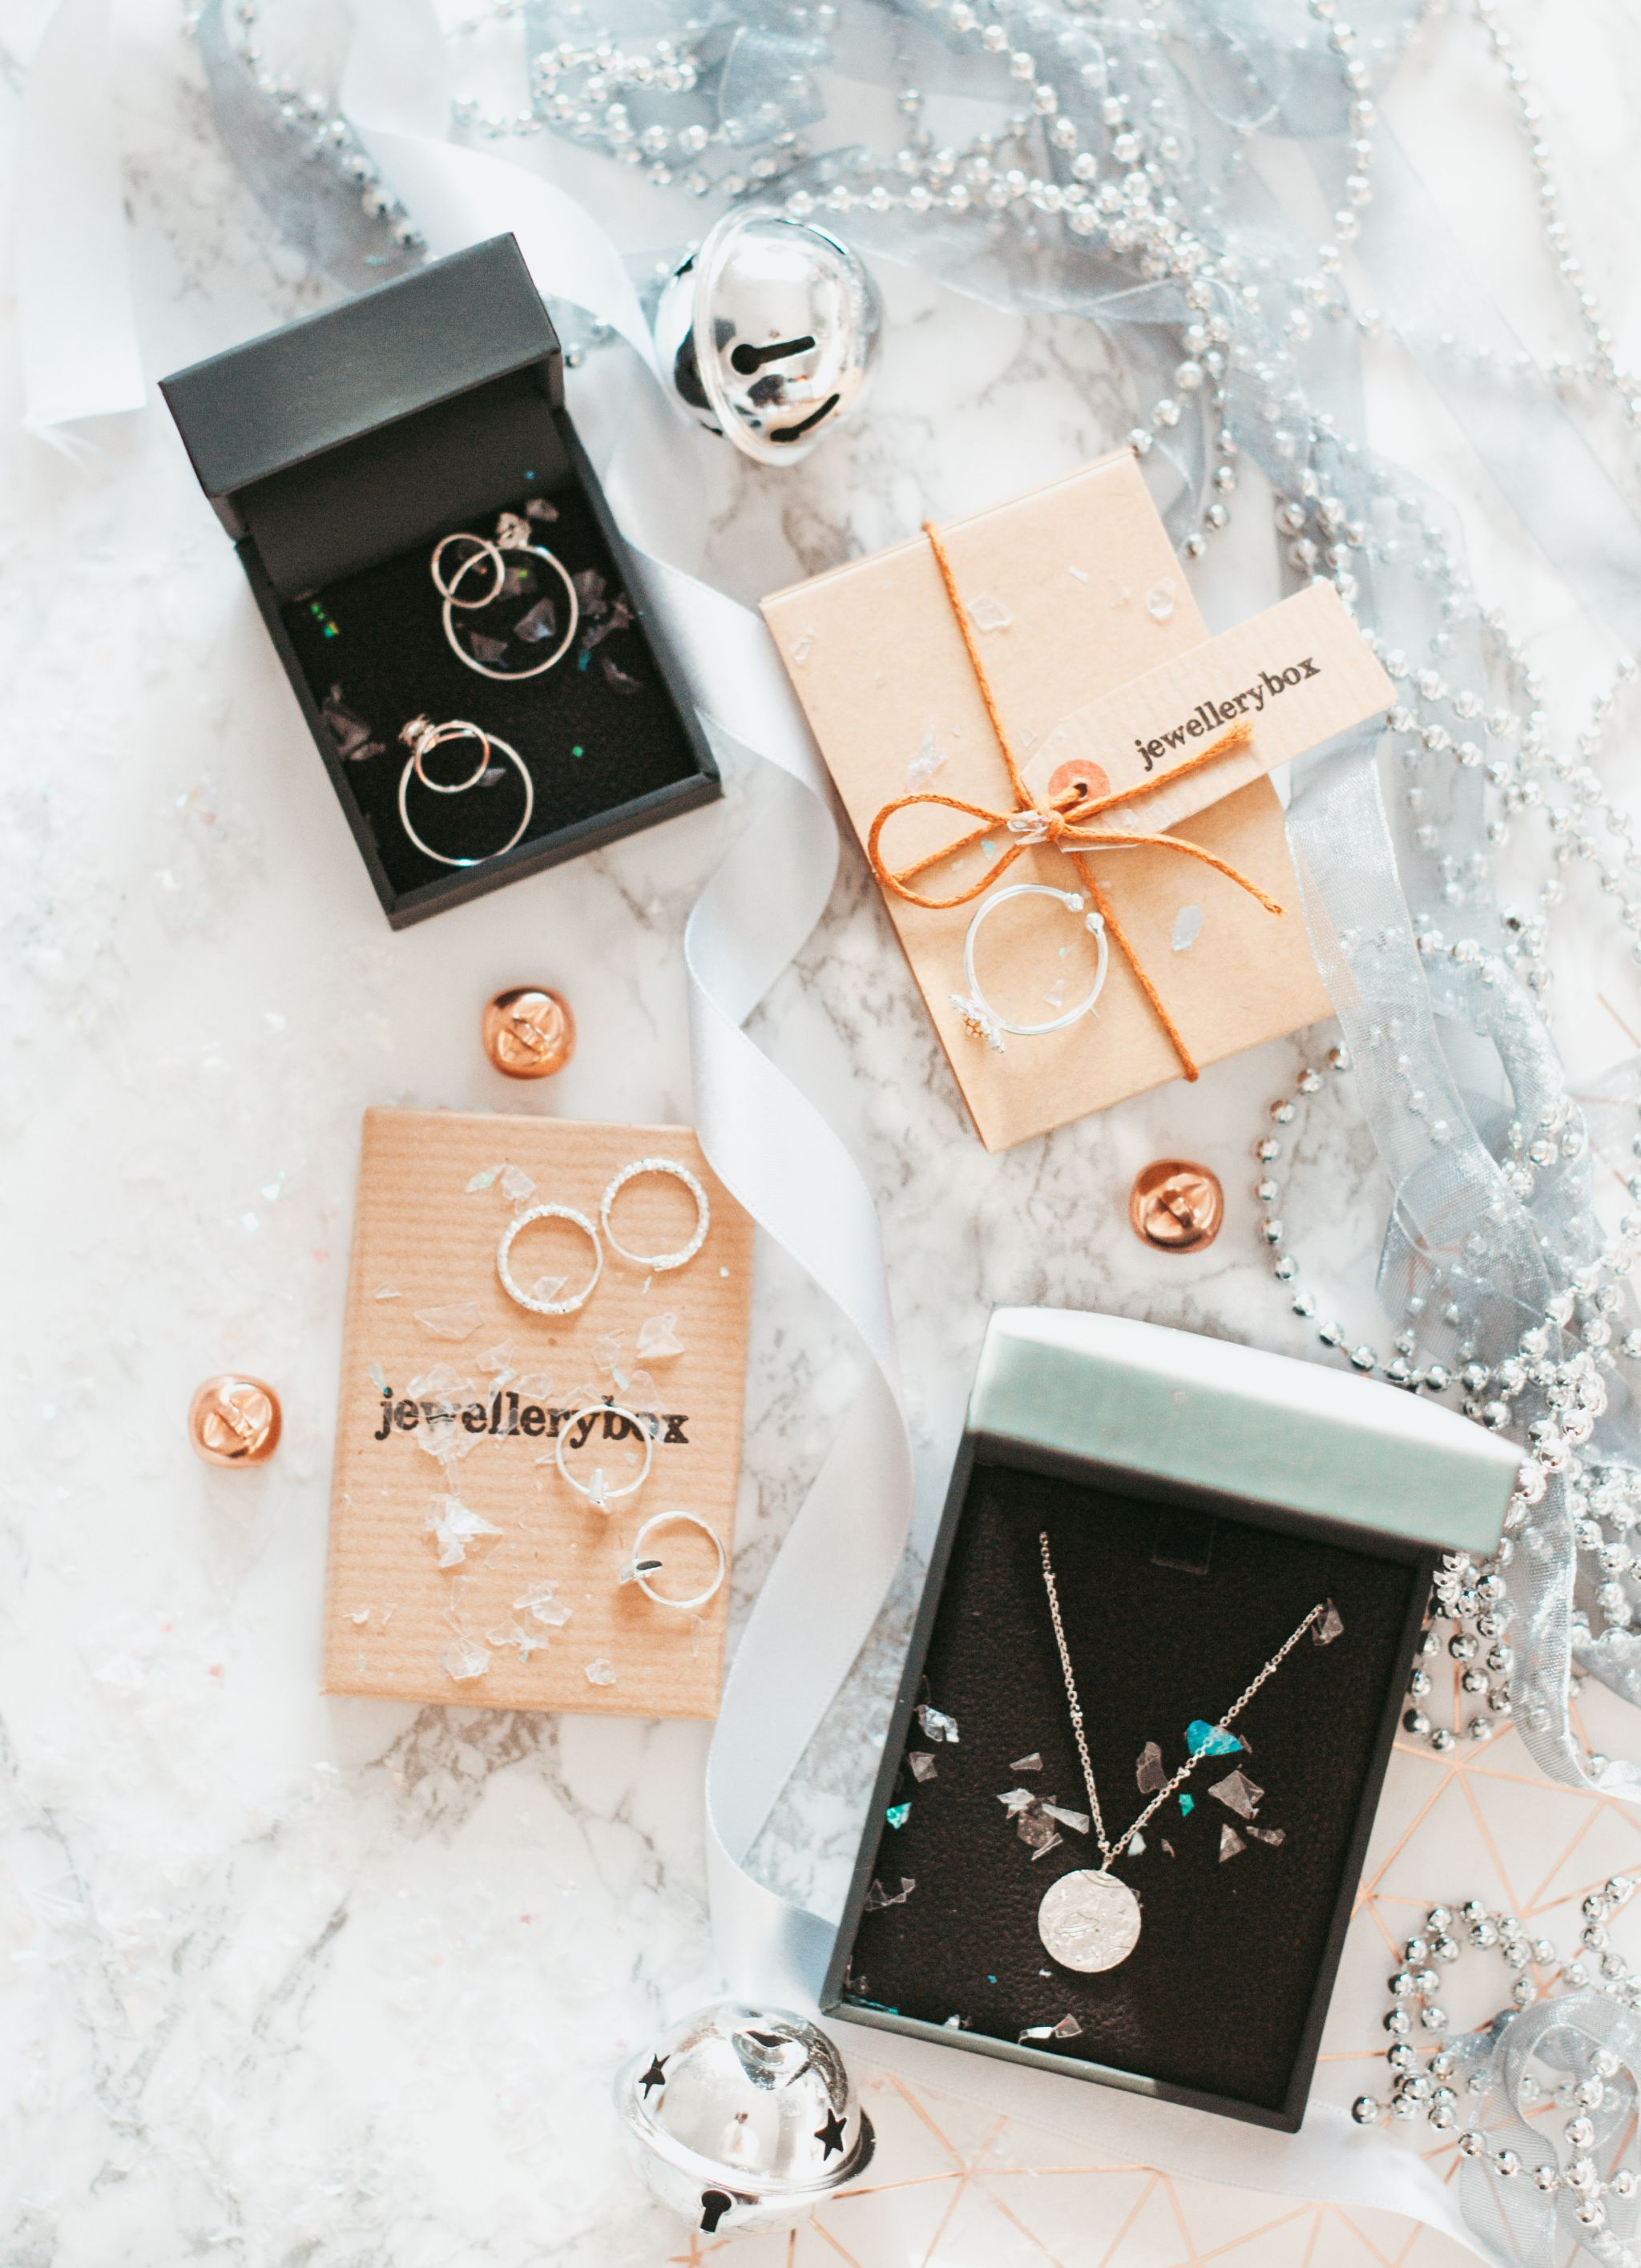 forever september, gift guide for the jewellery lover, jewellery, jewellery box, john greed, silver jewellery, sterling silver, necklace, earrings, ring, daisy ring, flatlay, beauty, fashion, lifestyle, christmas, gift guide,